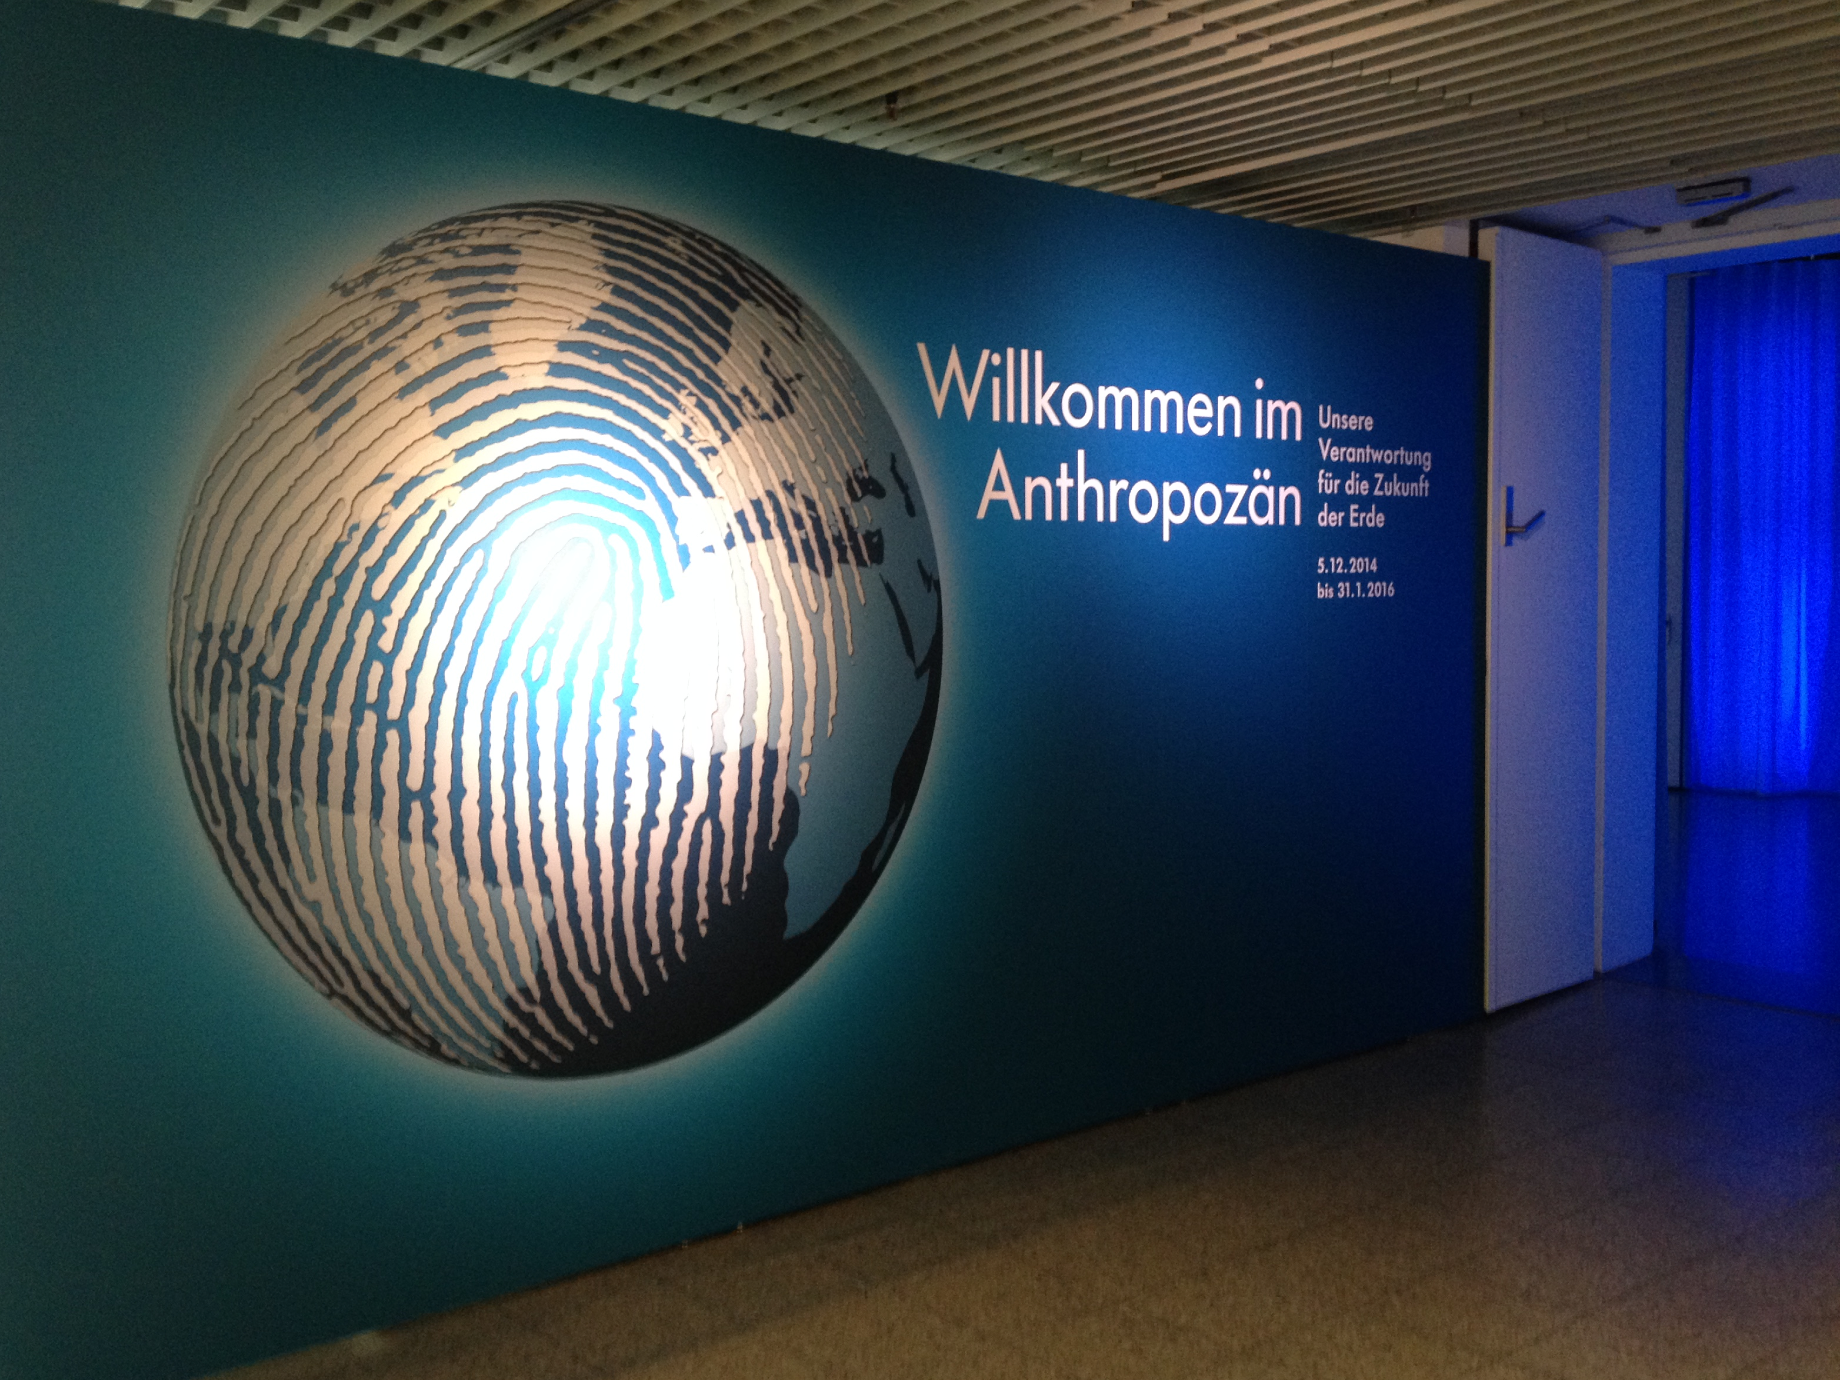 Anthropozän dt